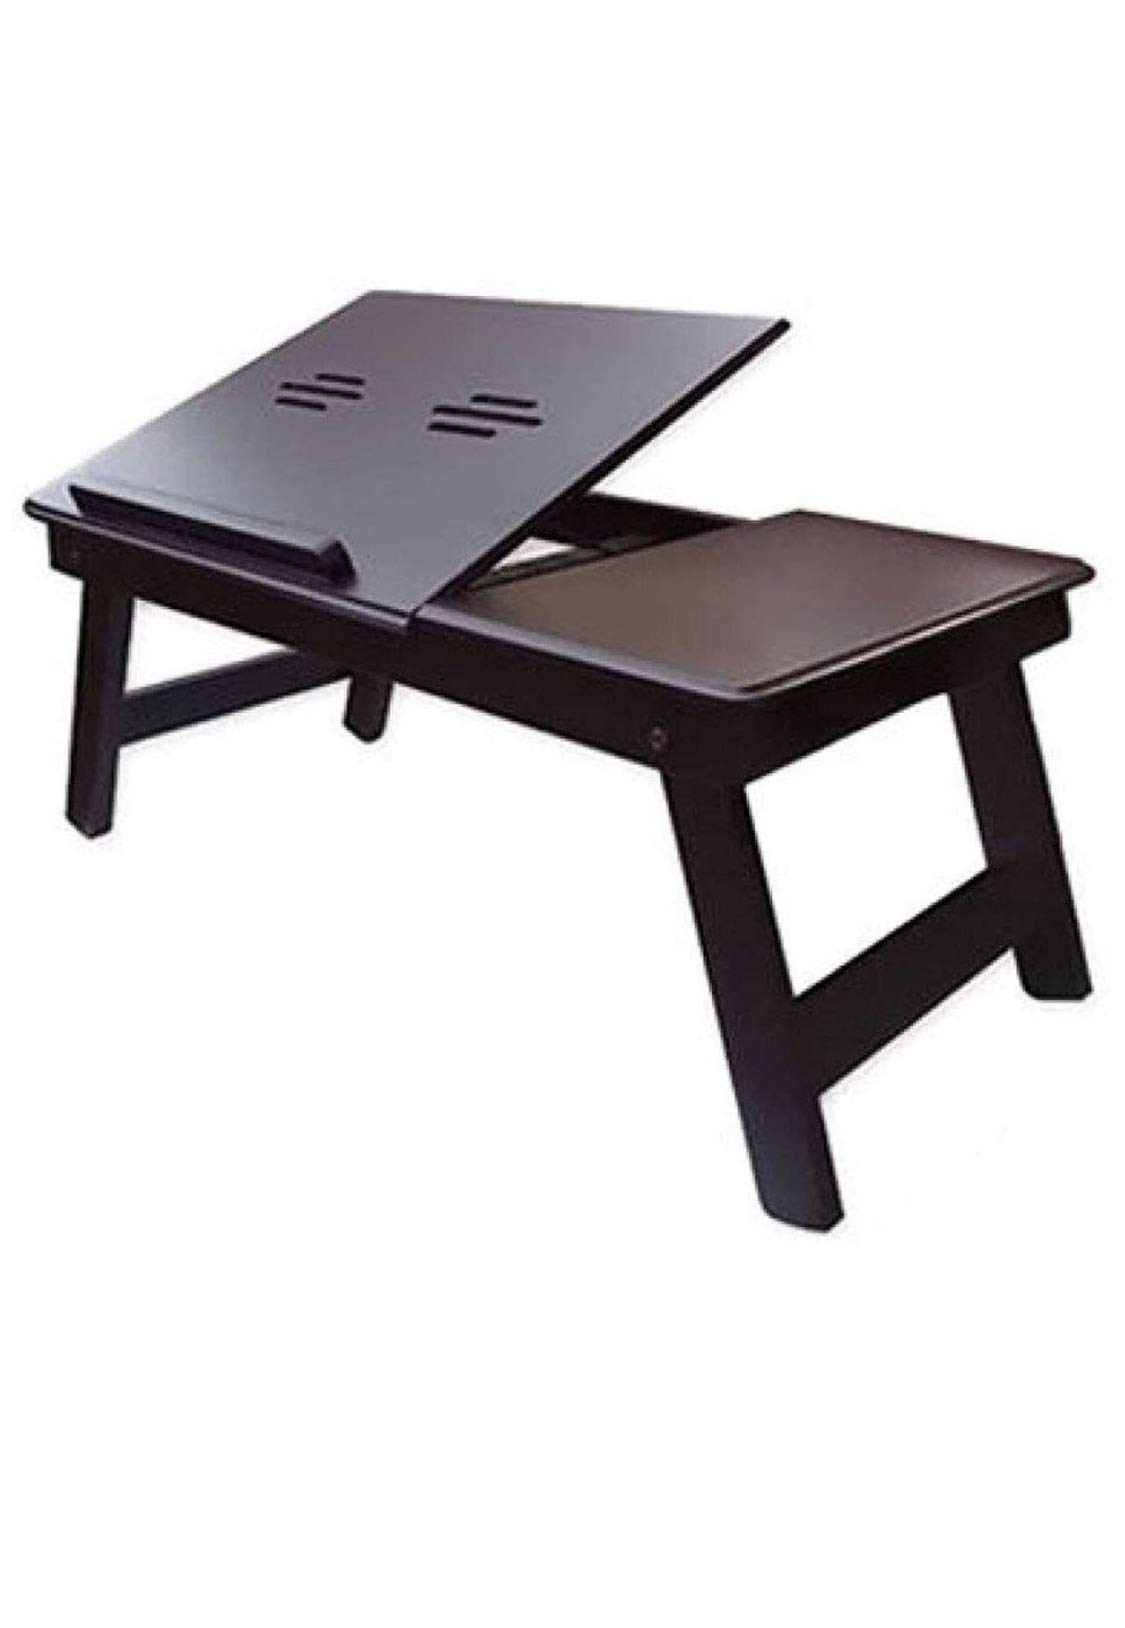 12 Star Wooden Laptop Table, Study Table, Multipurpose Table with Foldable Legs Brown (B07ZJ58QL9) Amazon Price History, Amazon Price Tracker